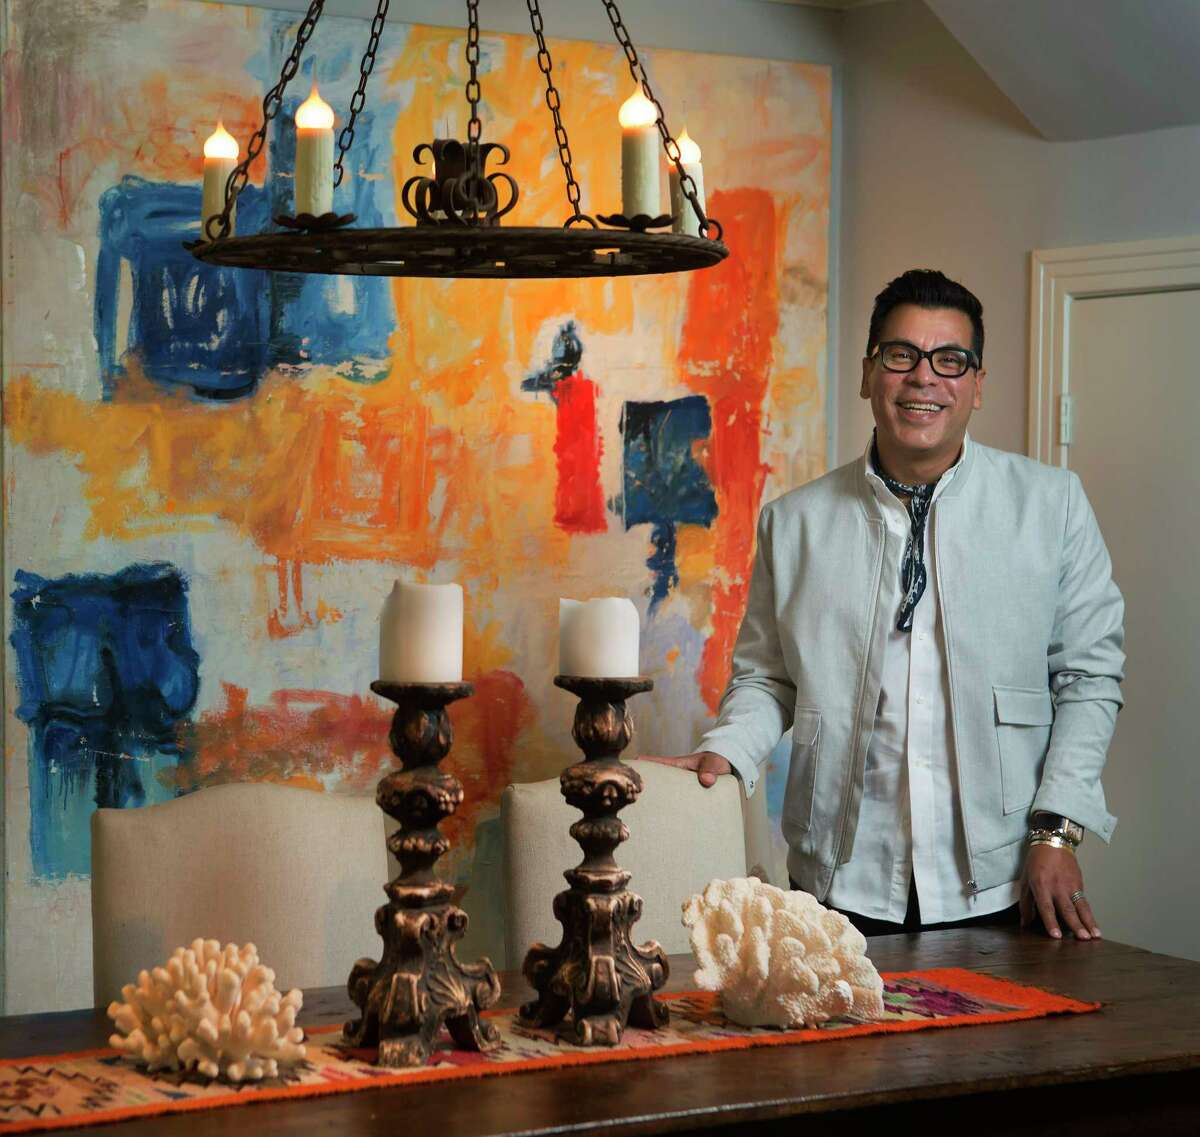 Jay Landa, owner of Jay Landa Jewelry in Rice Village, photographed at his home, Sunday, Oct. 23, 2016, in Houston.